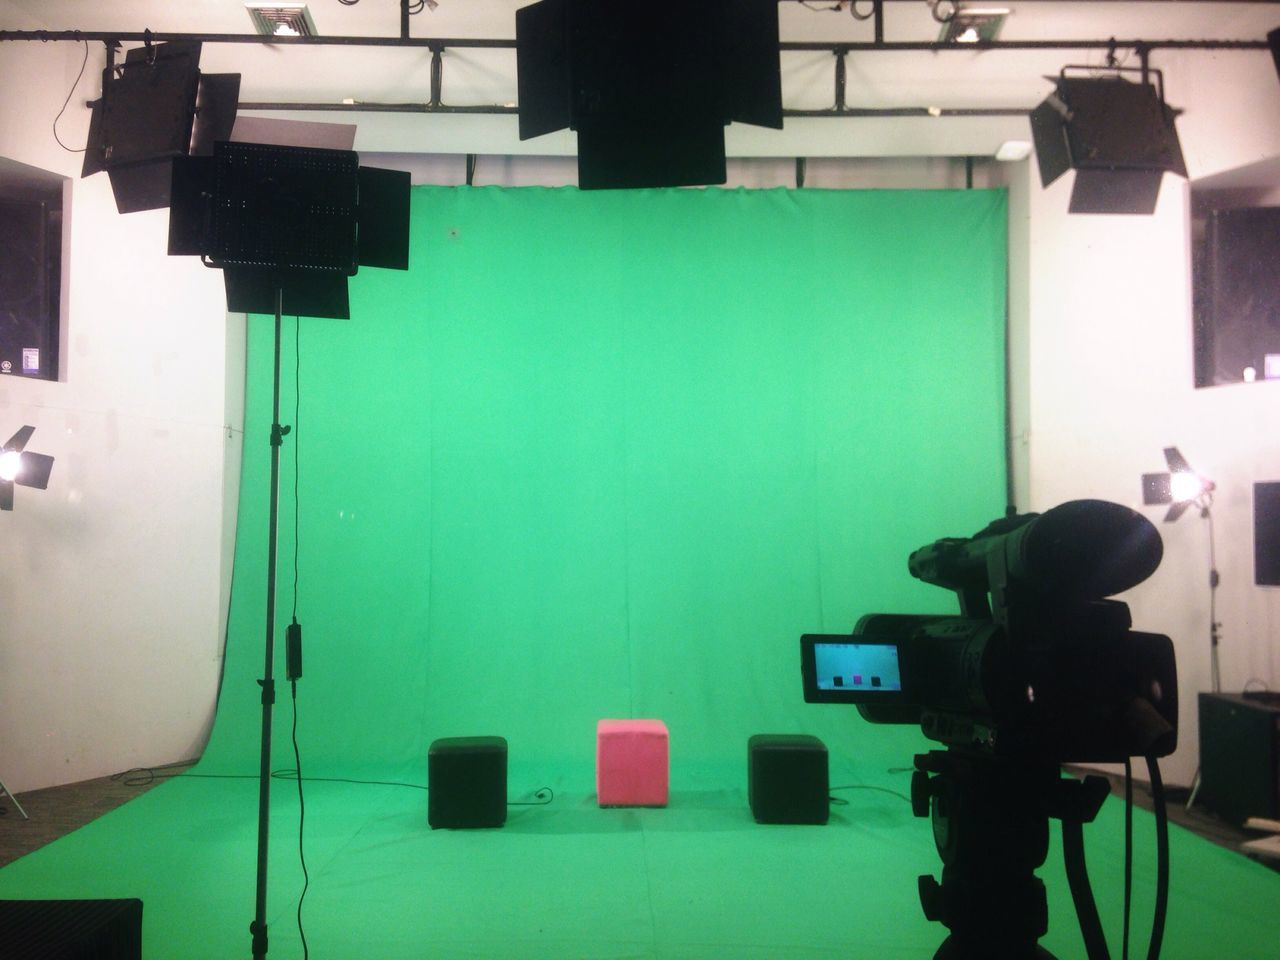 studio, technology, indoors, arts culture and entertainment, photography themes, film industry, no people, behind the scenes, camera - photographic equipment, television studio, television camera, day